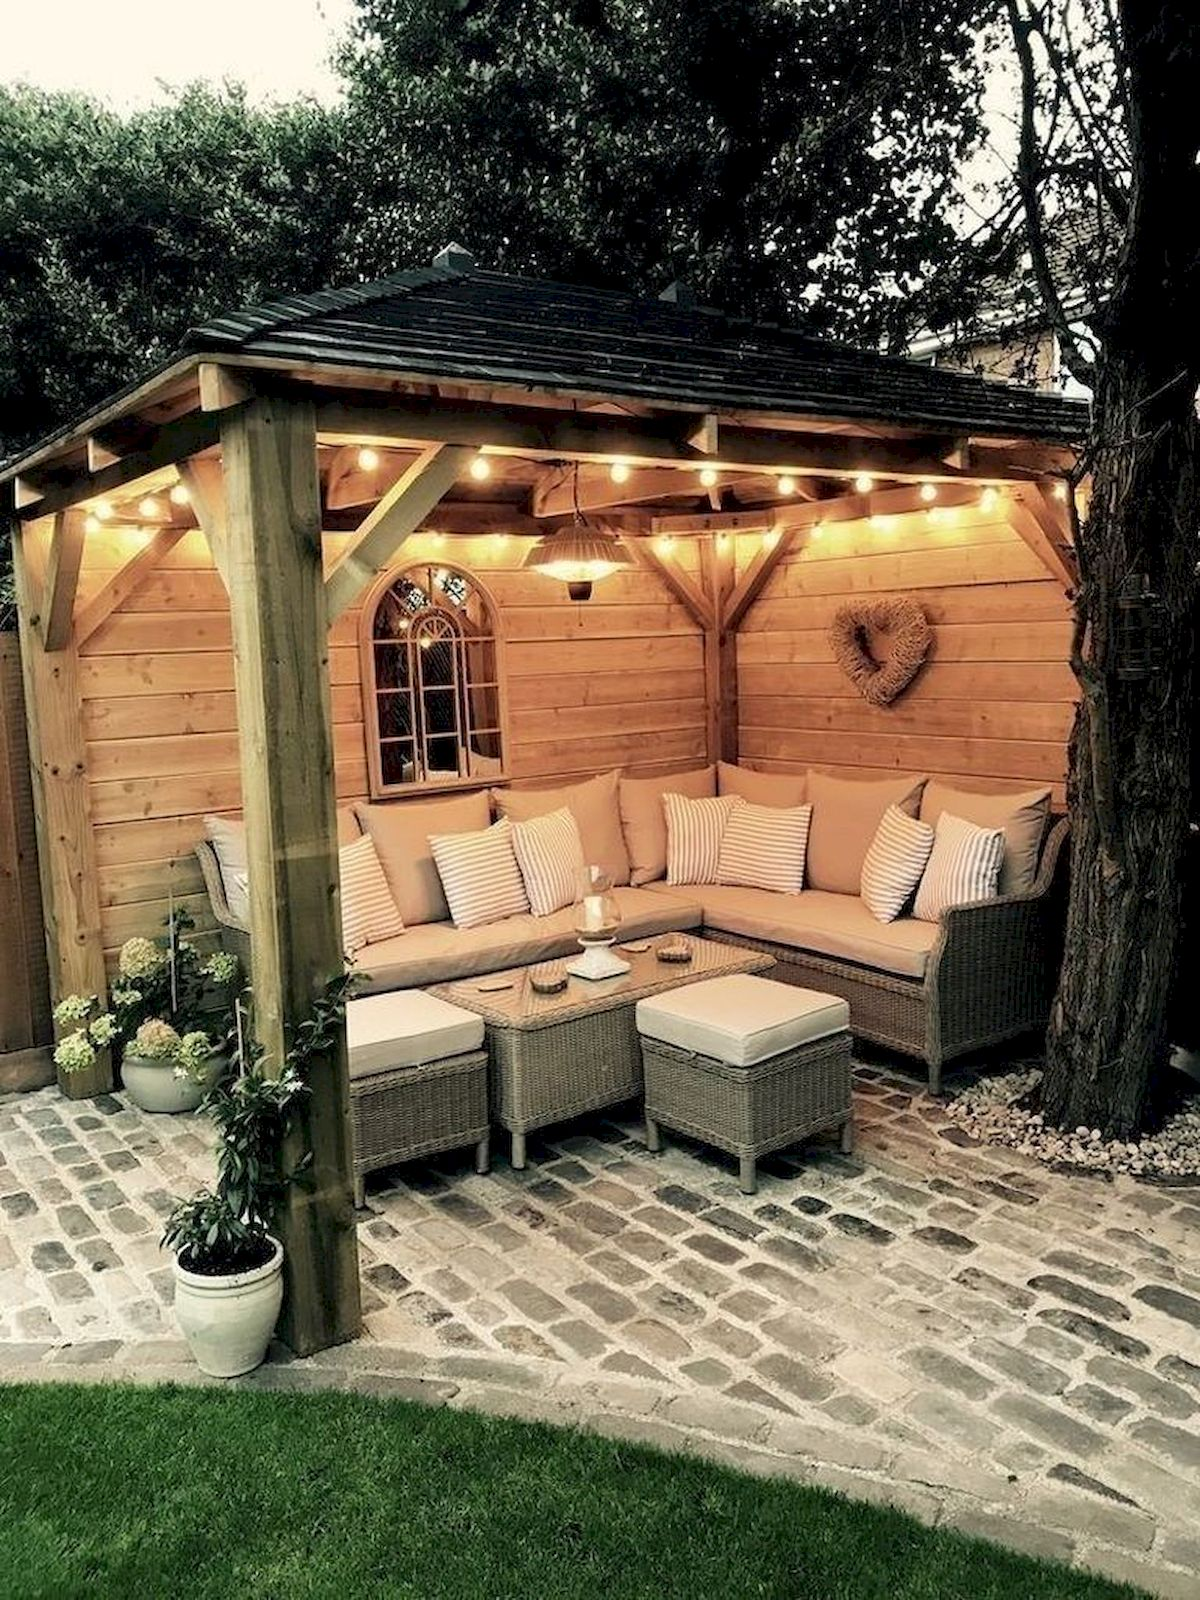 30 Best Small Backyard Patio Ideas (5) - Googodecor on Small Backyard Patio Designs id=22690